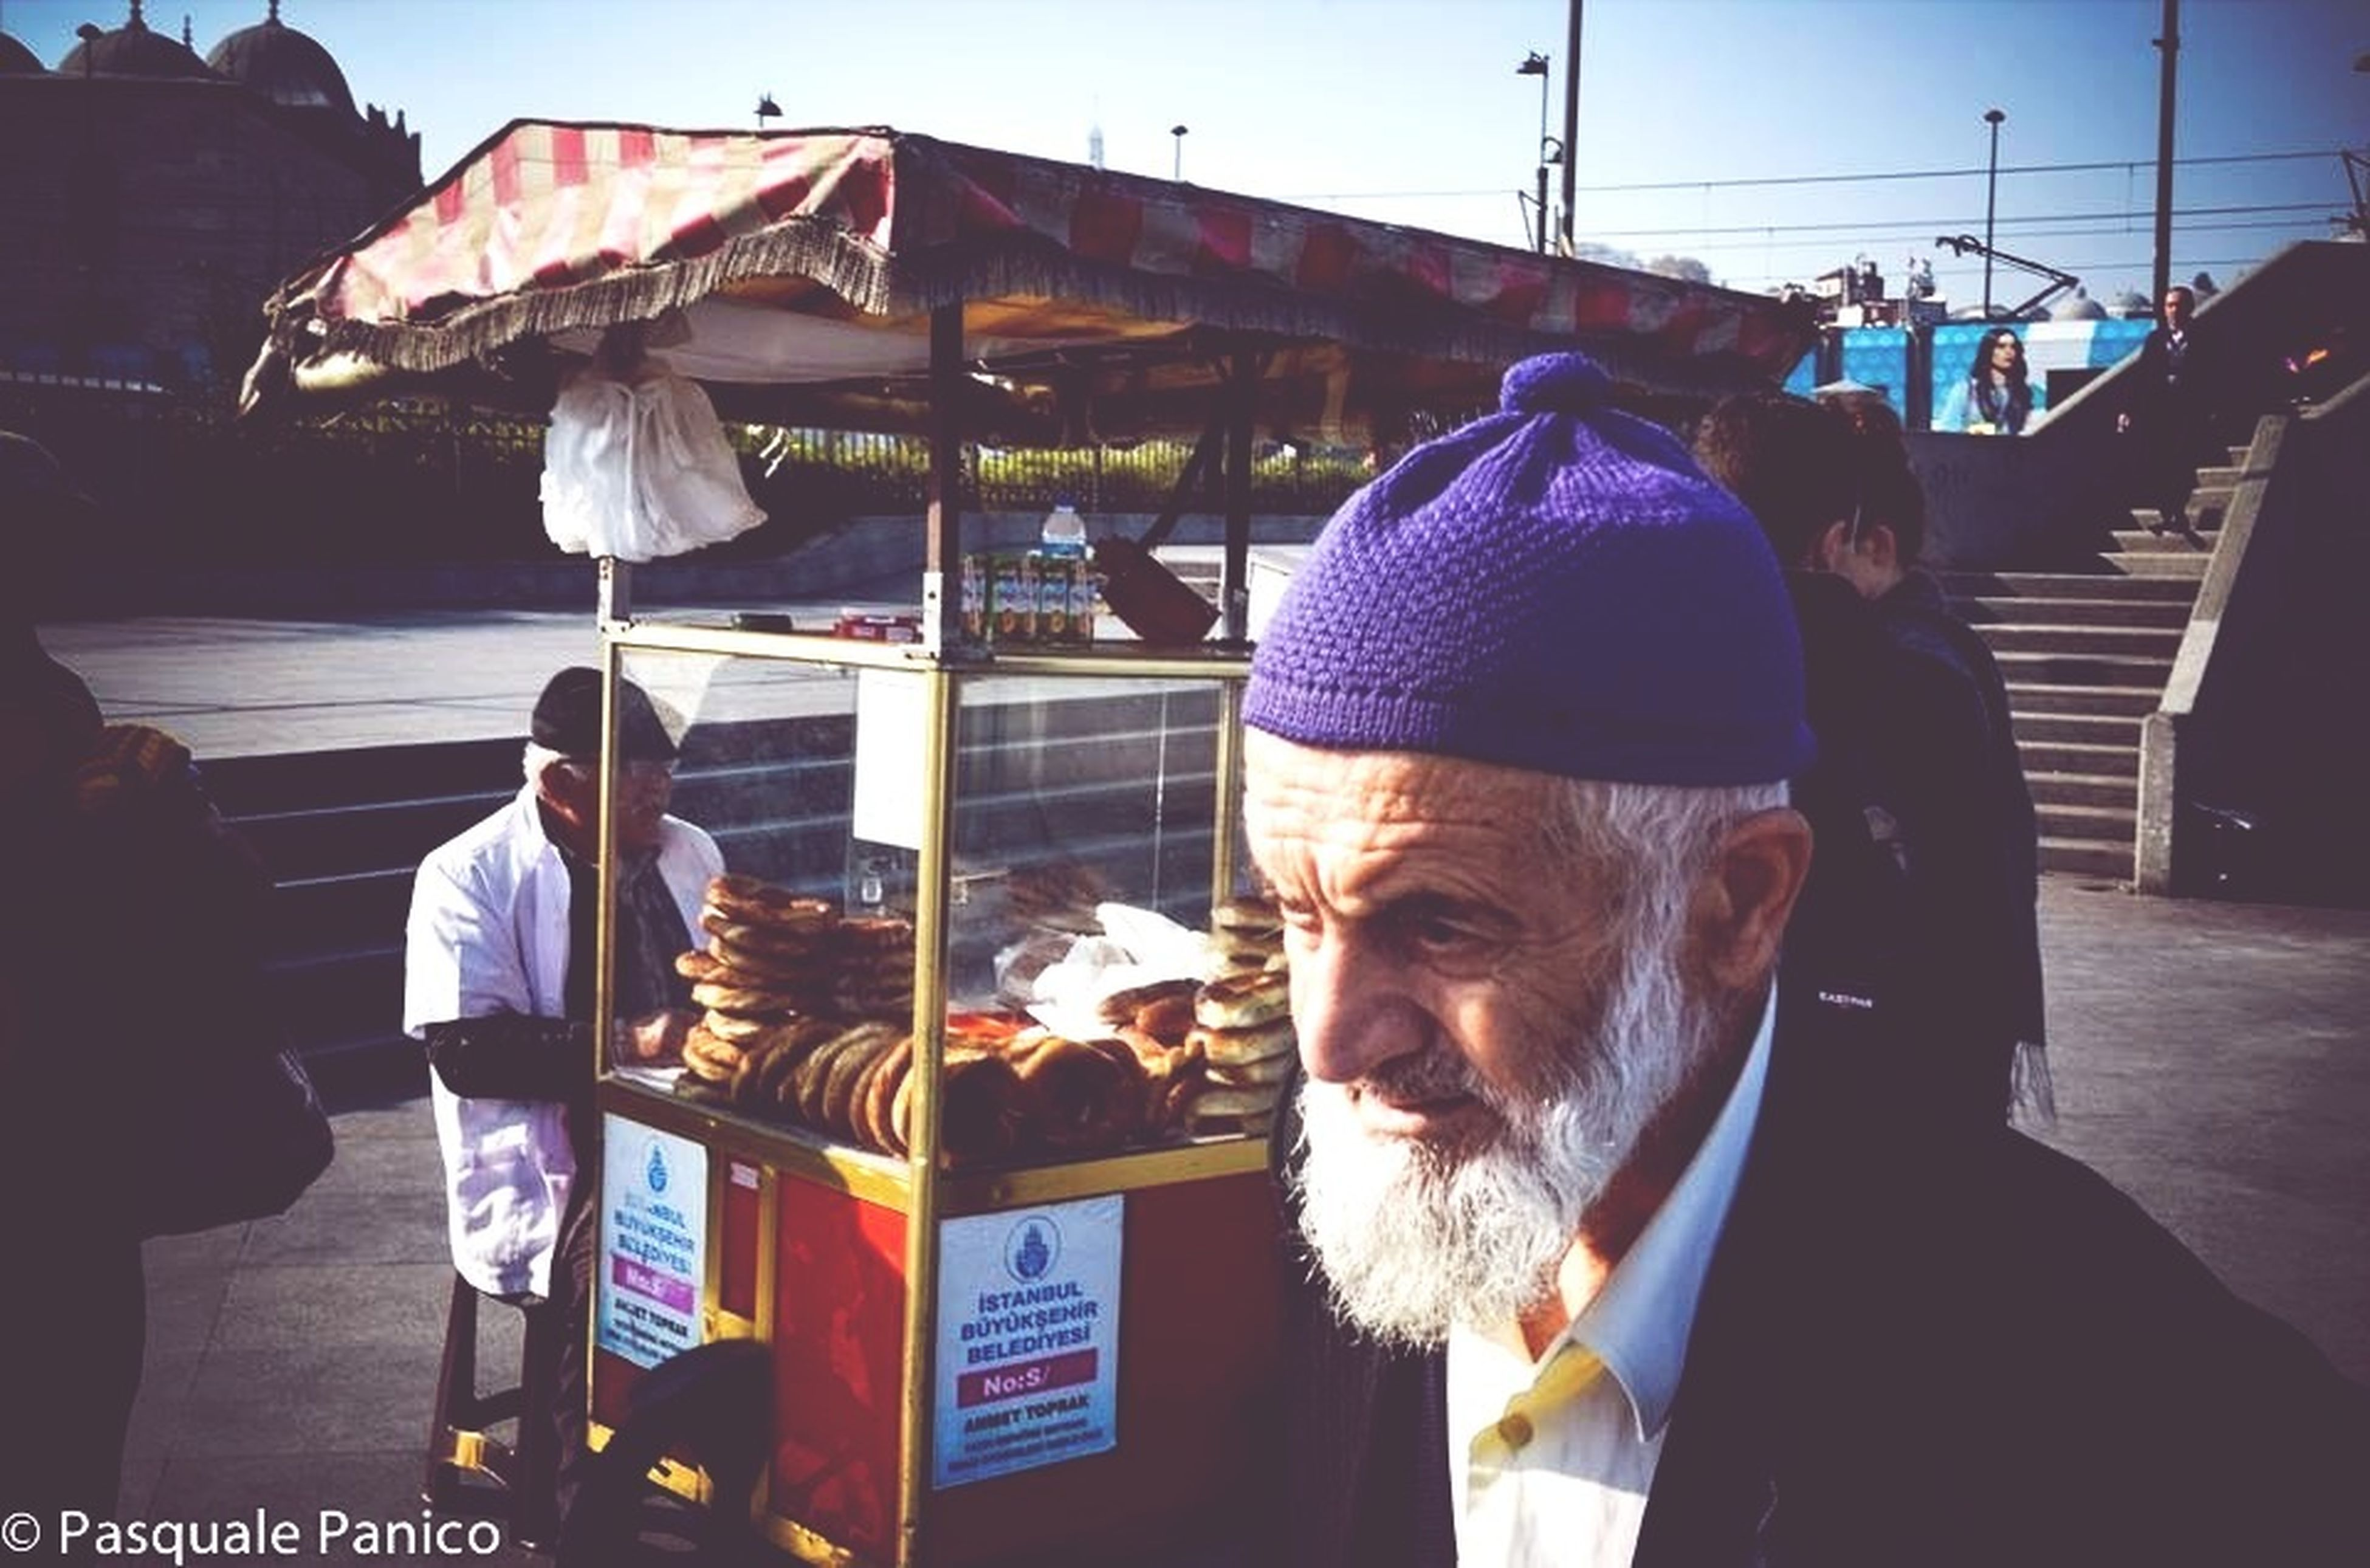 men, lifestyles, person, food and drink, leisure activity, street, transportation, rear view, casual clothing, incidental people, food, day, sitting, market, city, medium group of people, sunlight, outdoors